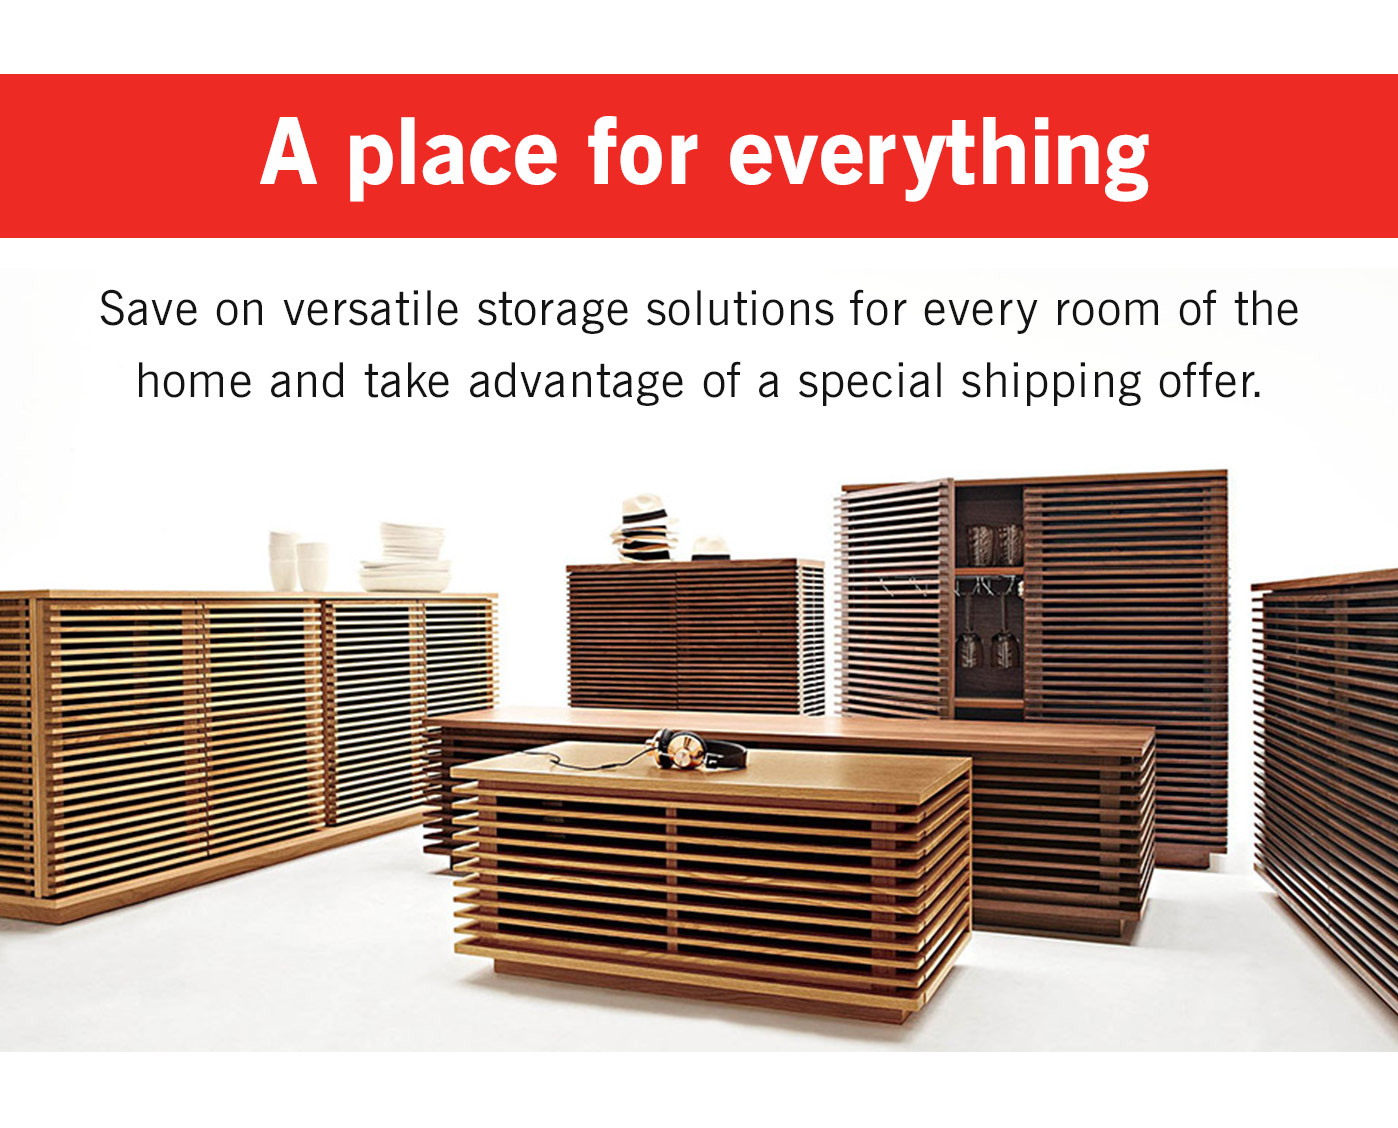 Save on versatile storage solutions for every room of the home and take advantage of a special shipping offer.